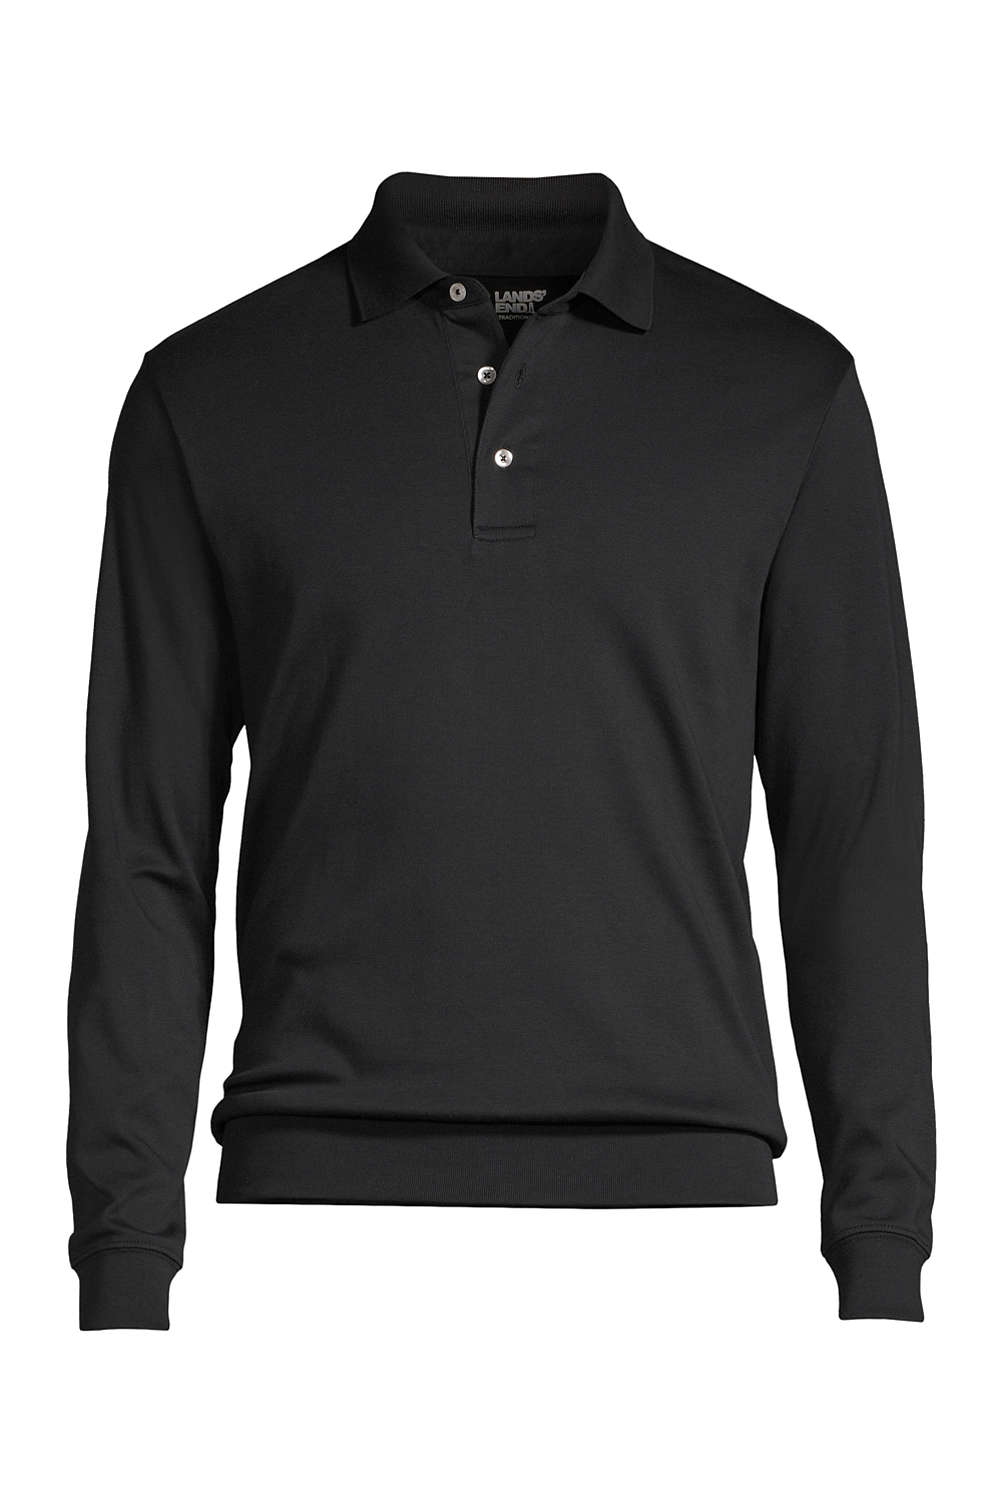 Mens Supima Long Sleeve Banded Bottom Polo Shirt From Lands End